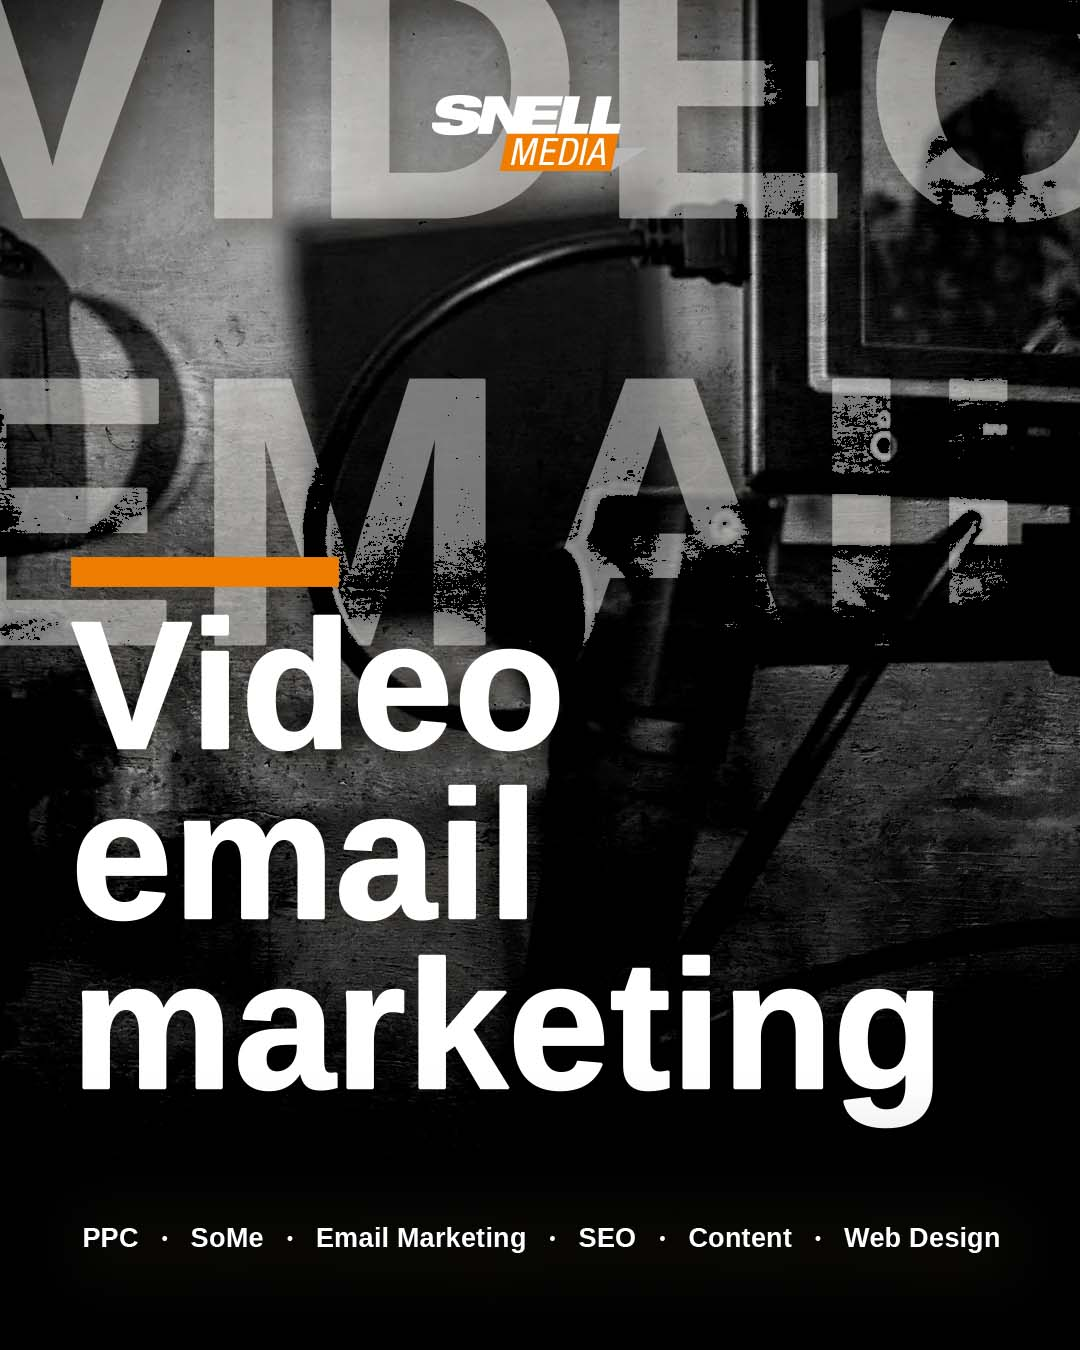 Video Email Marketing and CX Trends